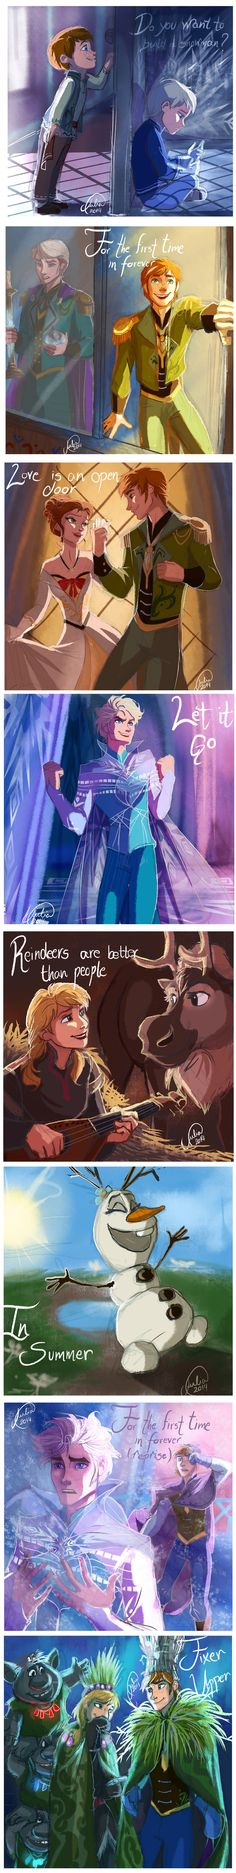 Frozen Songs - If the girls had been guys and the guys had been girls <- Truly awesome! I would love both versions! :)